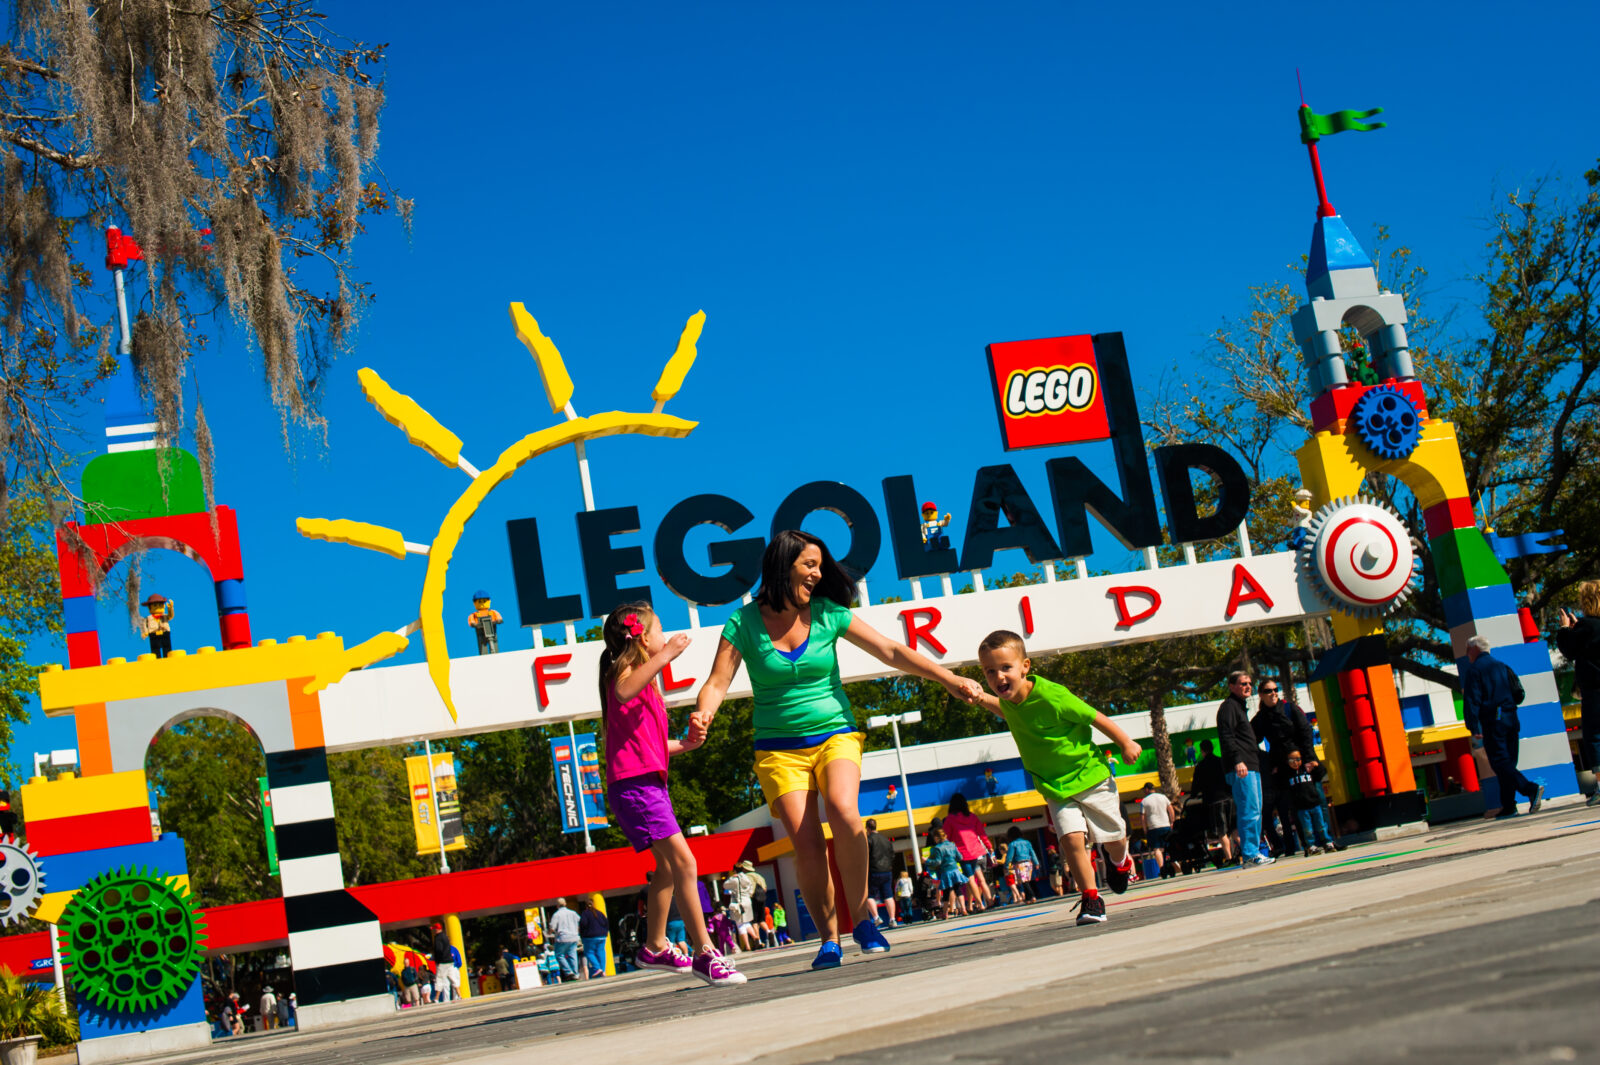 LEGOLAND Florida Preschooler Pass Park Entrance with Family